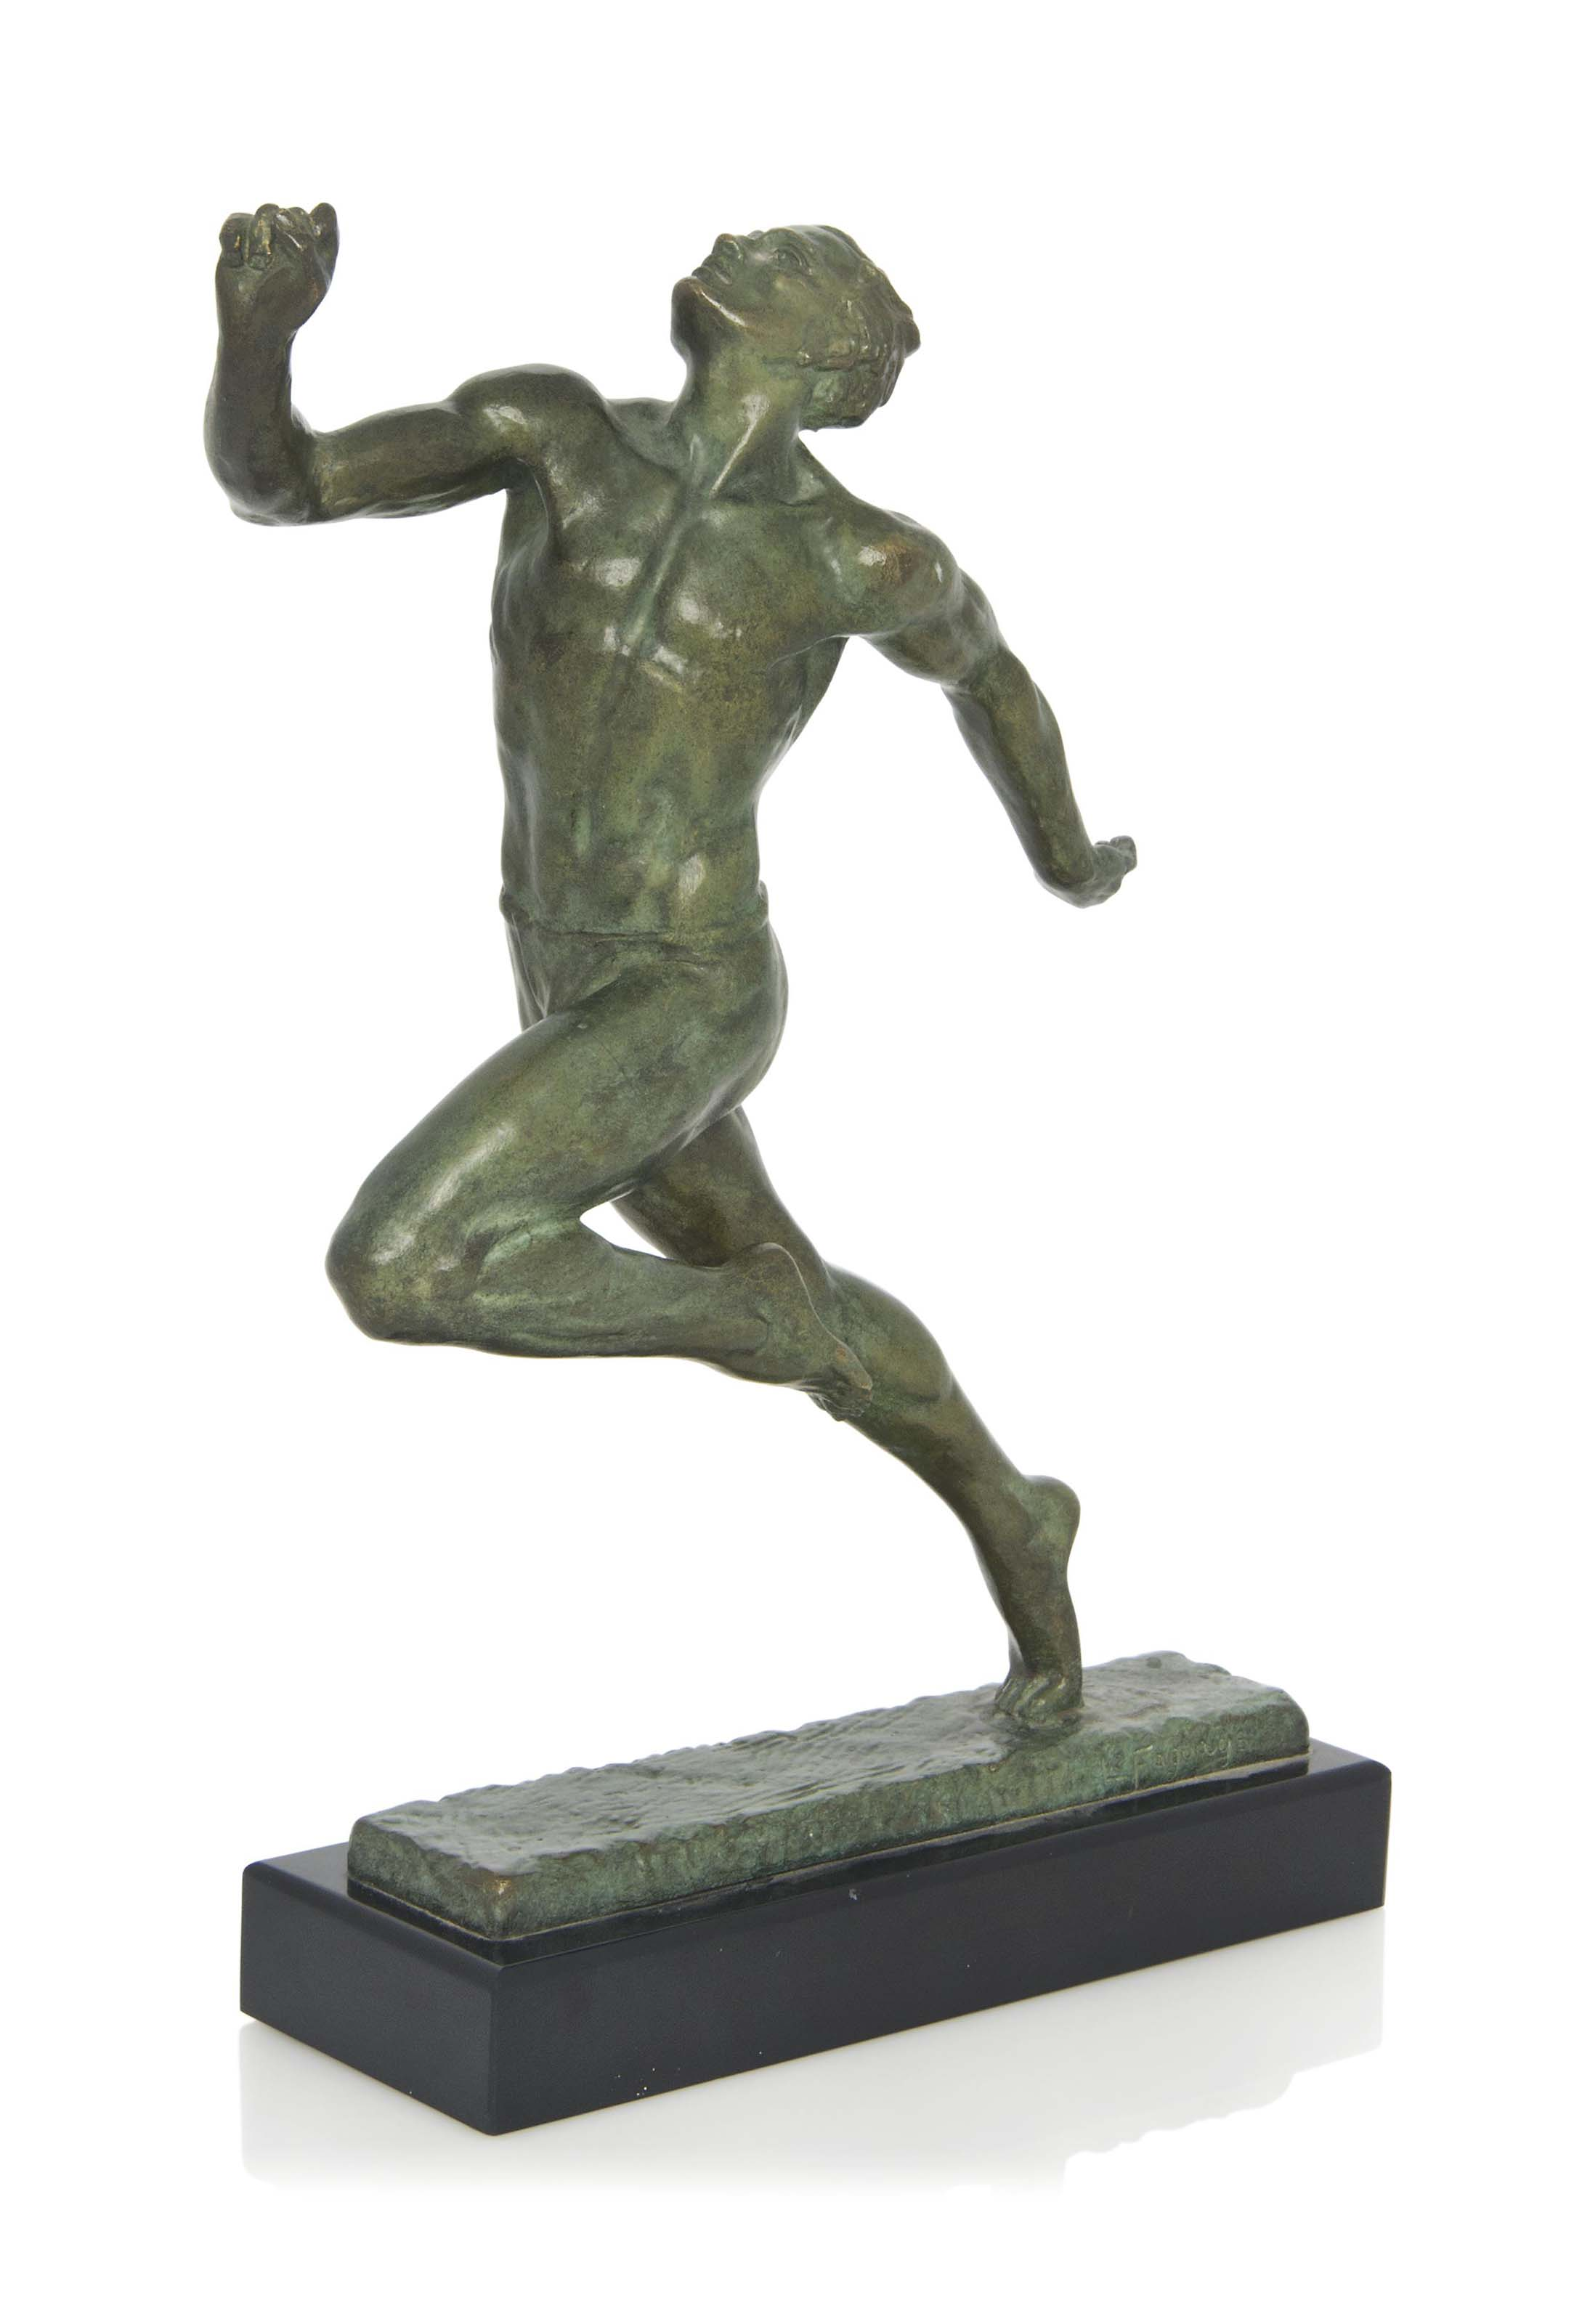 'THE SPRINTER ' A PIERRE LE FAGUAYS (1882-1935) COLD-PAINTED BRONZE FIGURE